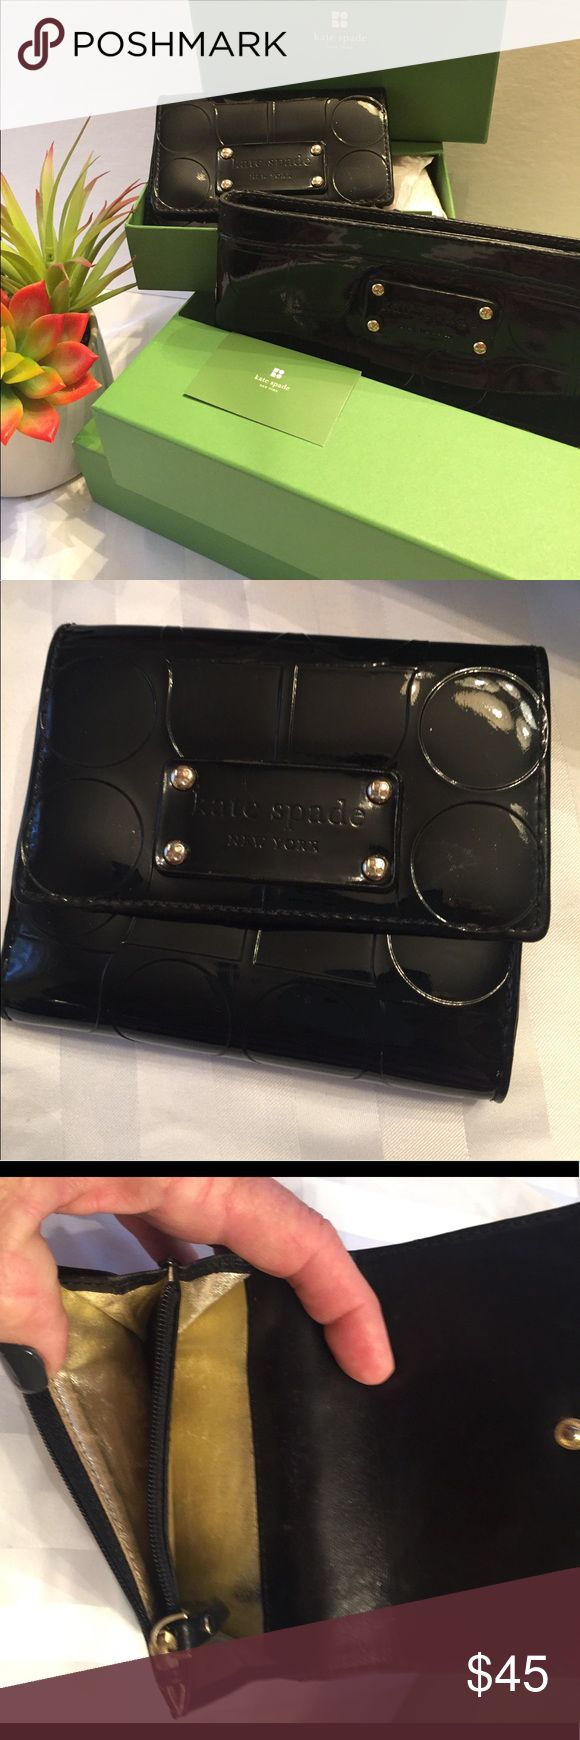 Kate Spade Black Patent Wallet and Wristlet Kate Spade matching wallet and wristlet with gold linings in both. Wallet has change zip pouch and fold out for id/$. Wristlet has pockets inside for goodies! Wristlet has slight wear on top edge, both in boxes with tags!! I'd like to sell together, so priced extra LOW!!! kate spade Bags Wallets